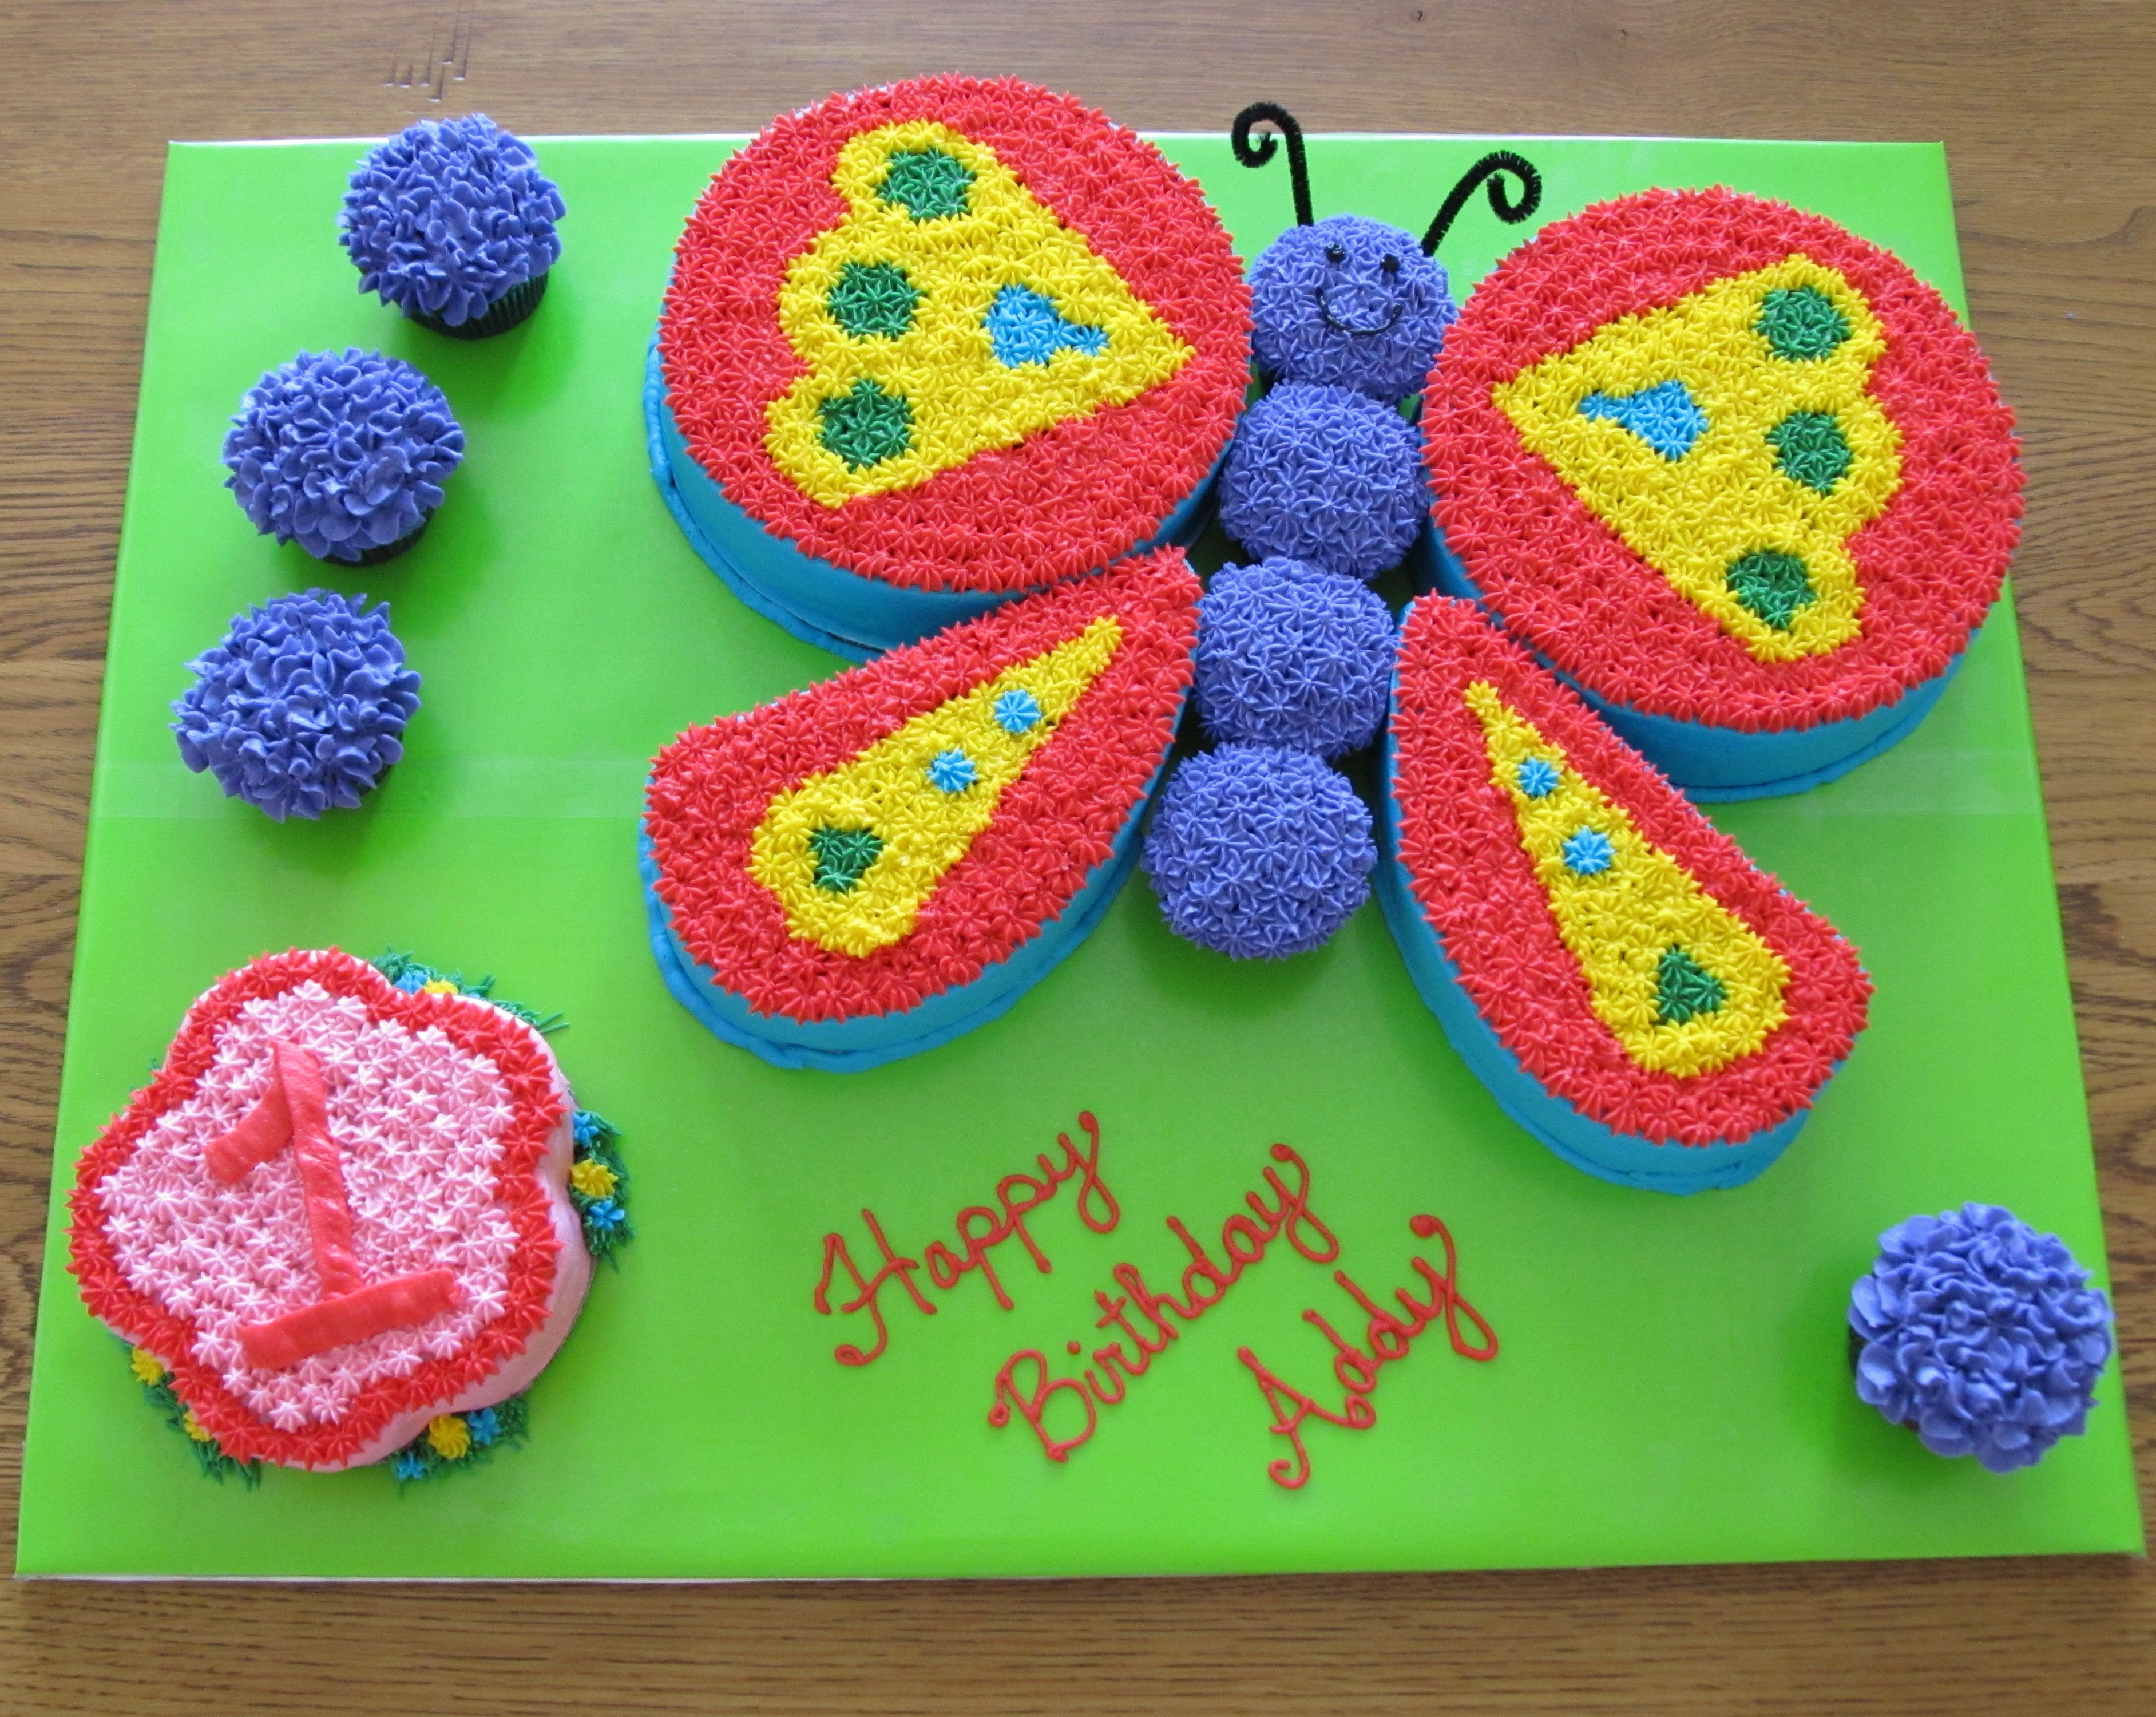 06082013 female birthday cakes pinterest smash cakes butterfly shaped cake i used two round for top wings one heart cut in half for bottom wings round trimmed to flower shape for smash cake cupcakes for izmirmasajfo